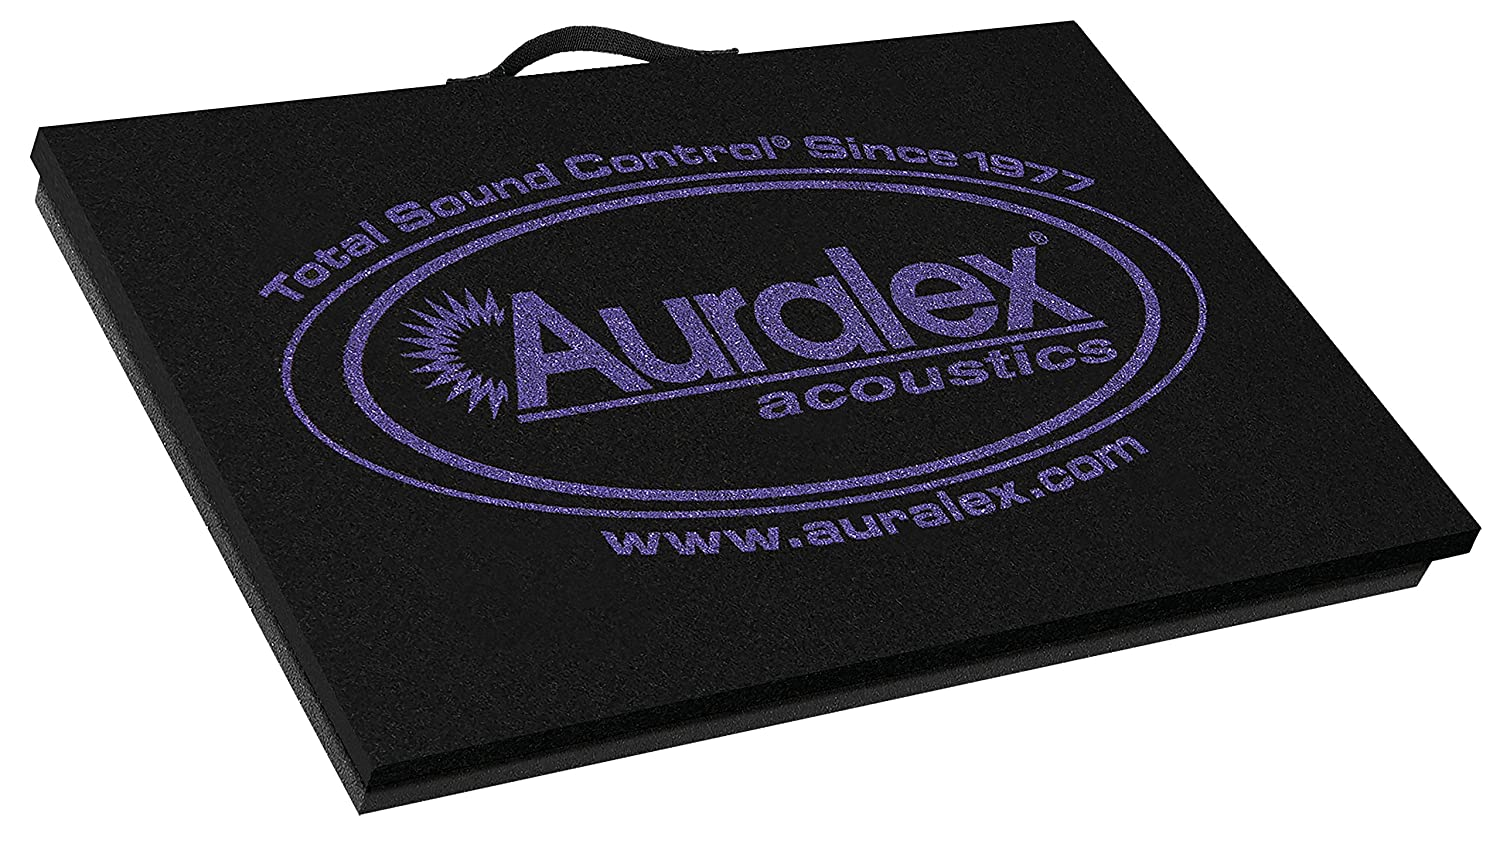 "Auralex Acoustics GRAMMA v2 Isolation Platform for Amplifiers, 7/4 x 15"" x 23"""